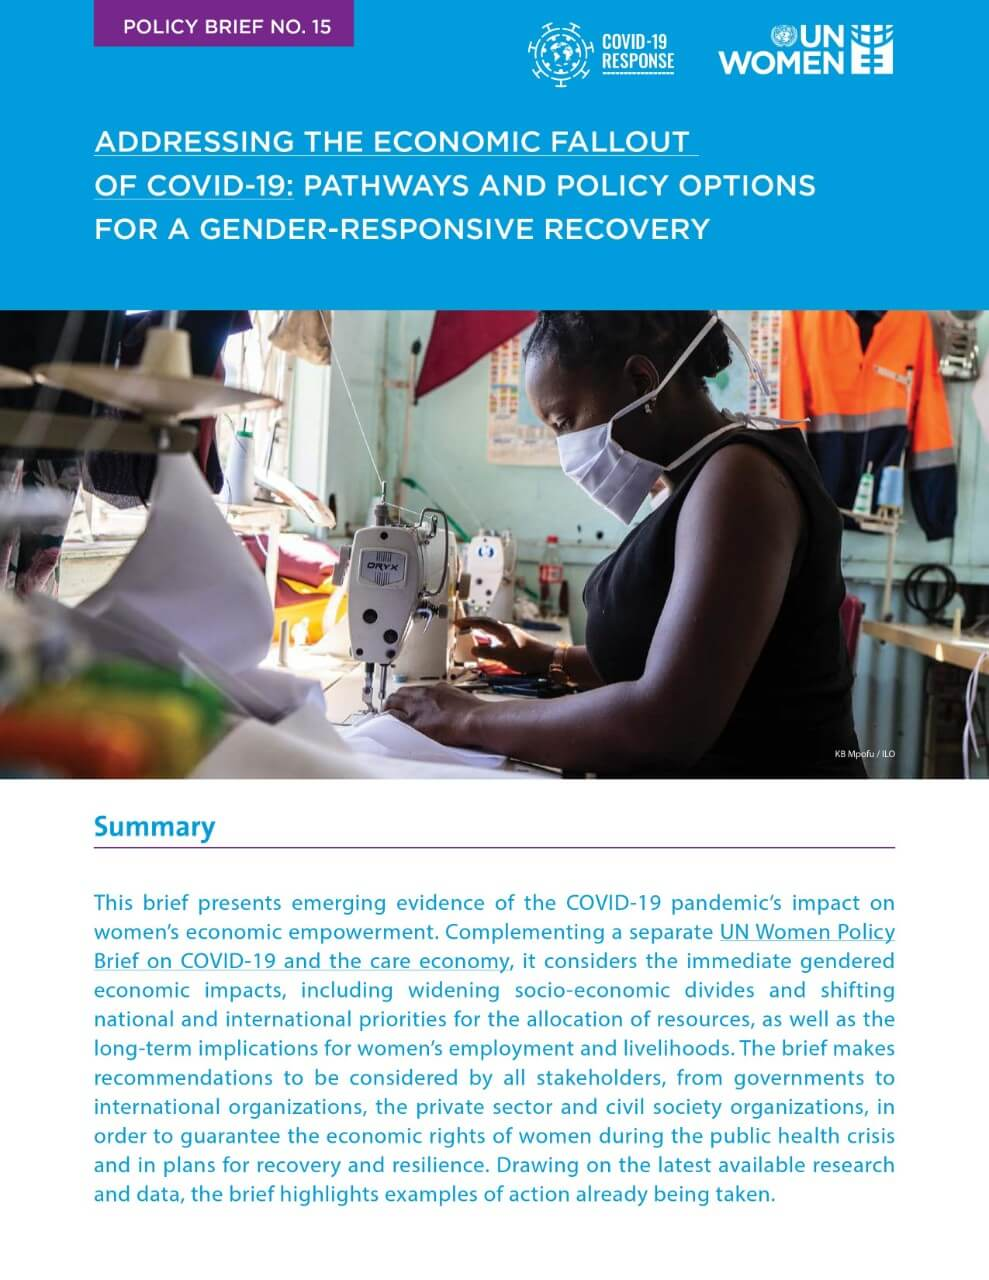 Addressing the economic fallout of COVID-19: Pathways and policy options for a gender-responsive recovery